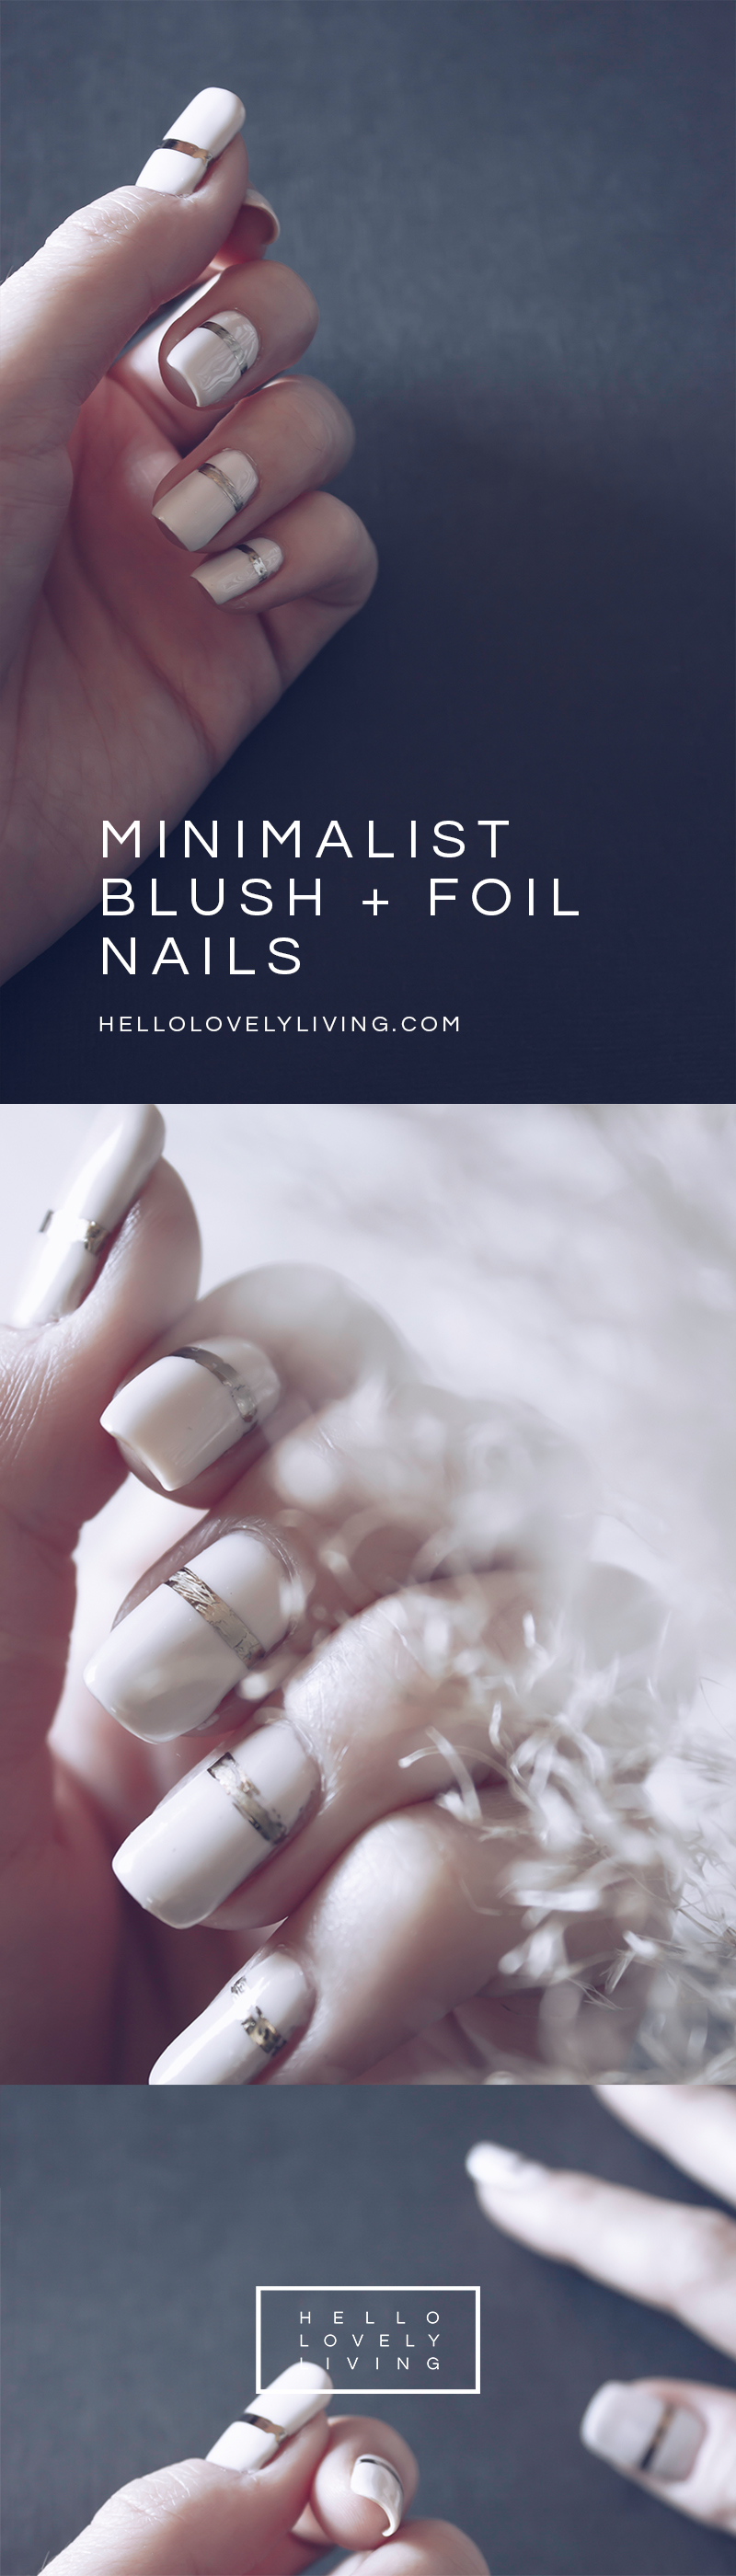 HelloLovelyLiving.com | DIY Minimalist Blush Pink + Foil Nails | Essie Between The Seats Nail Polish